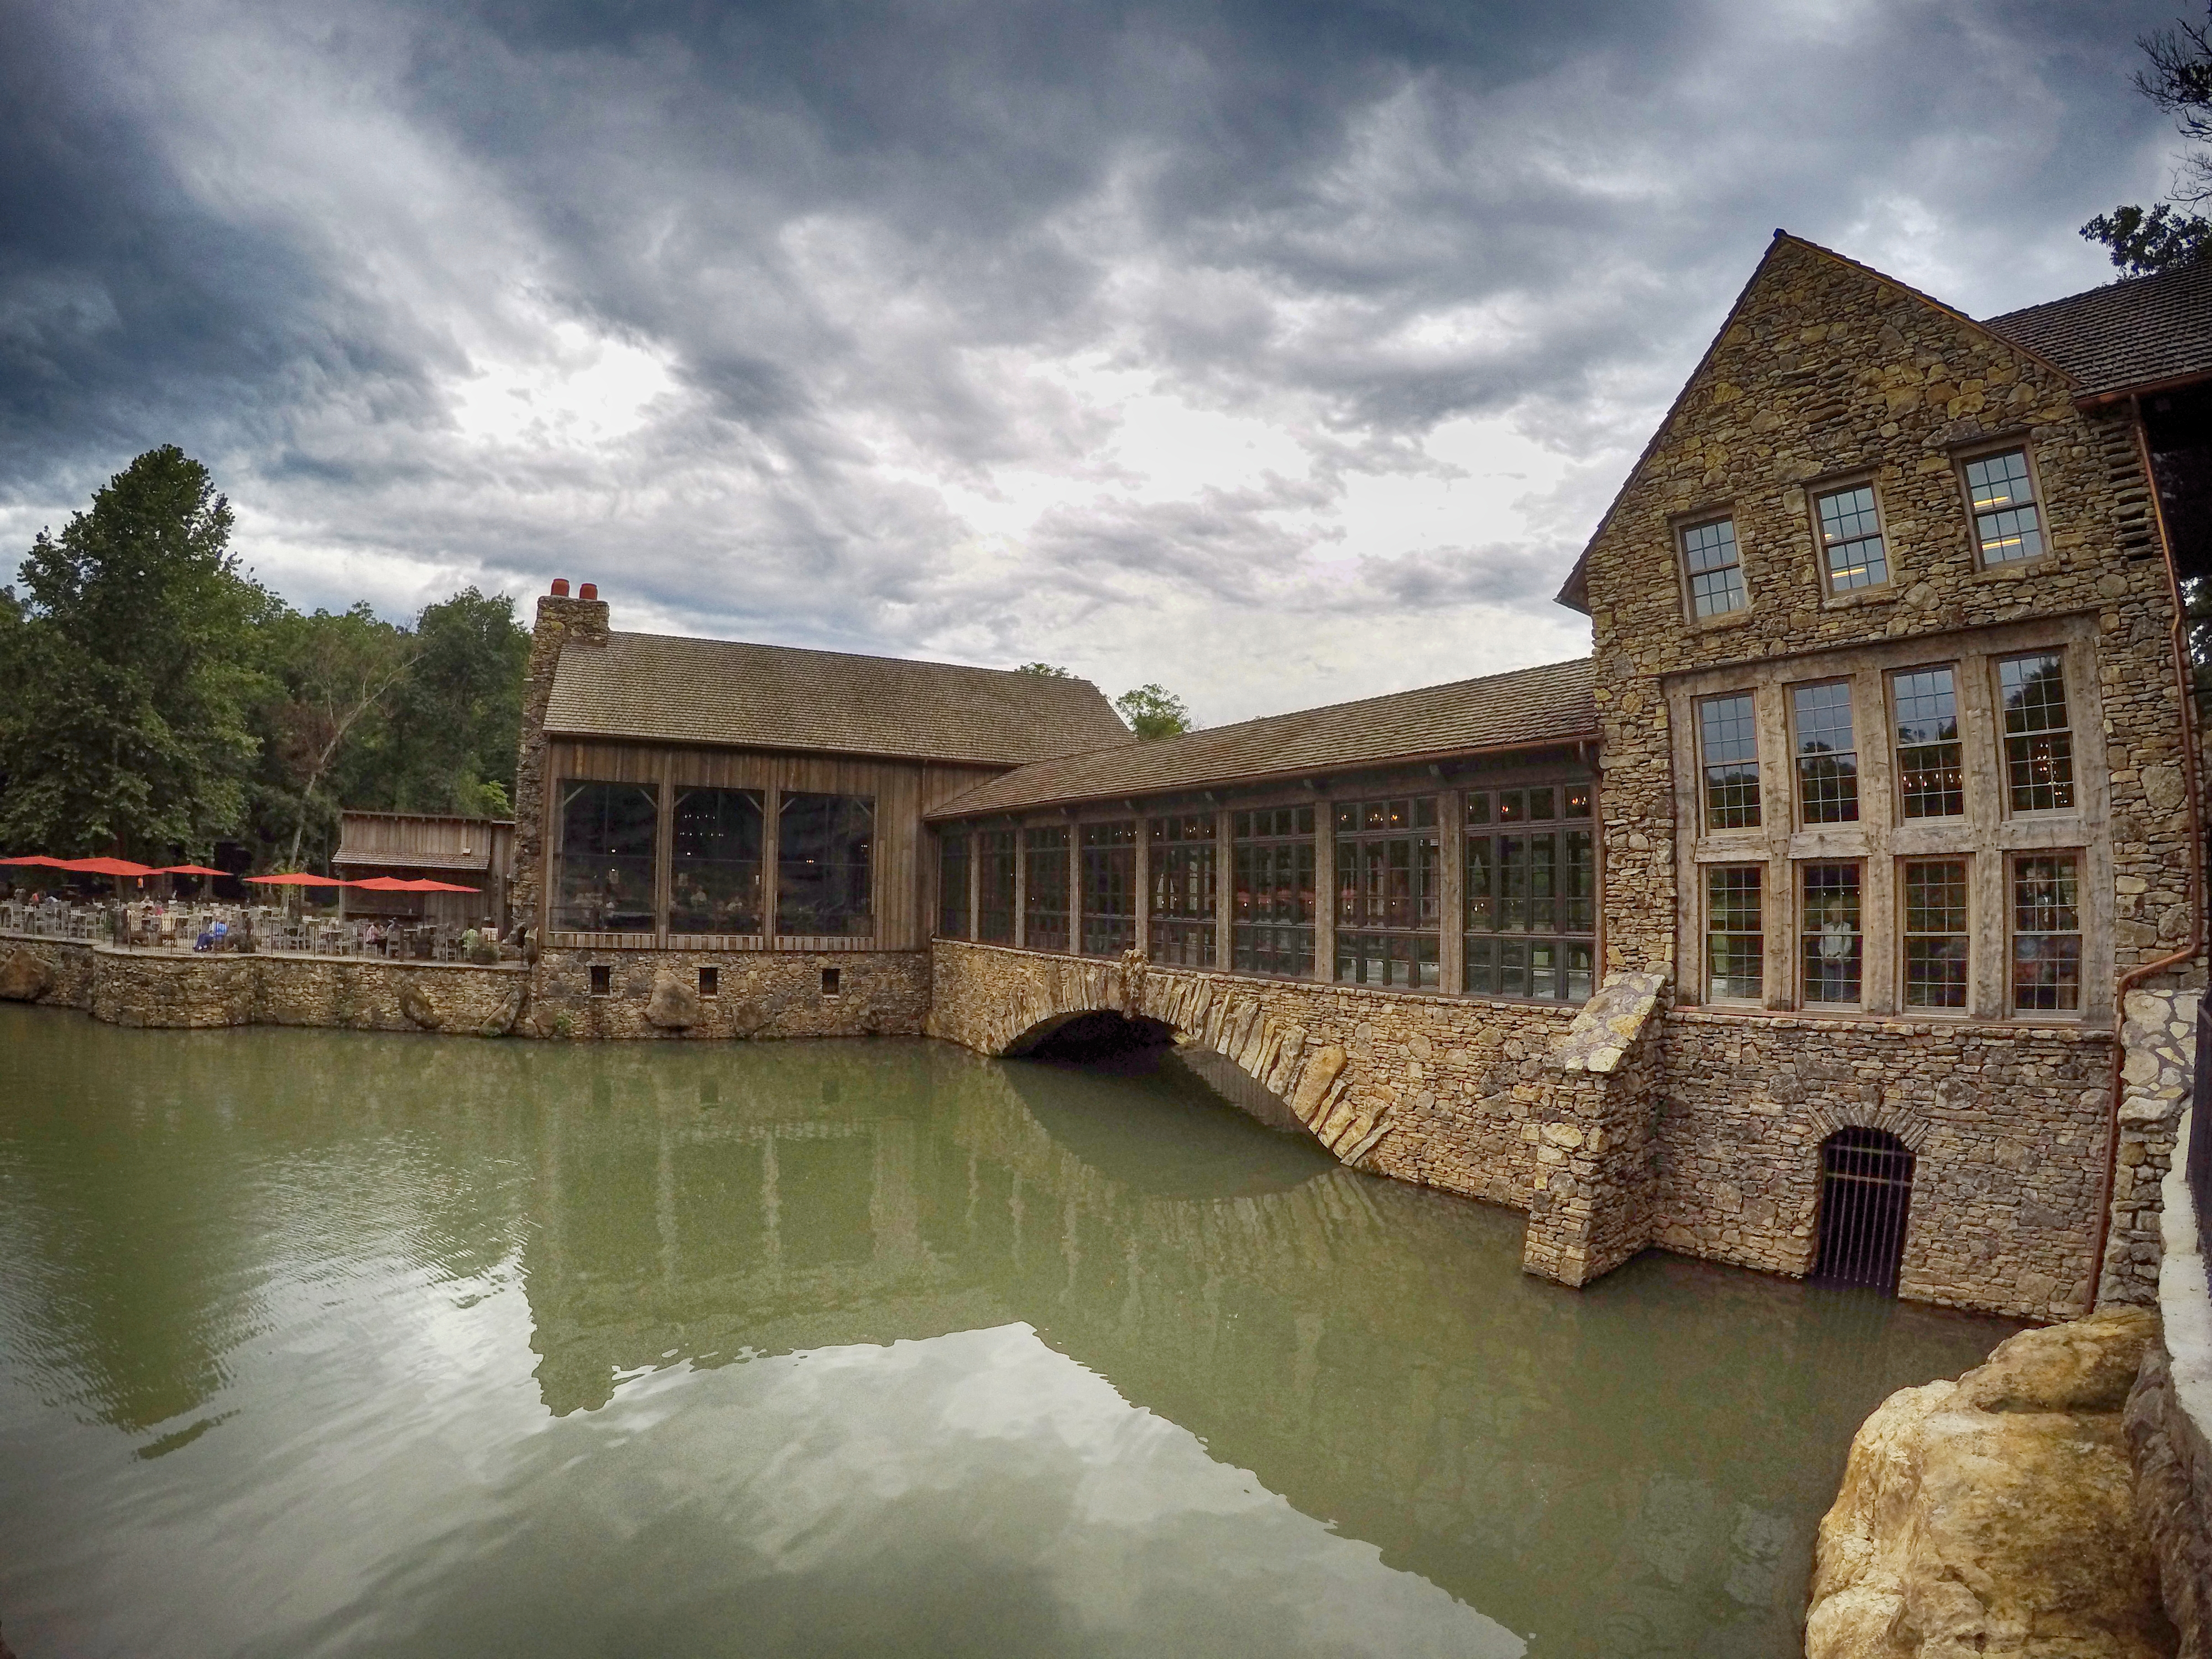 View of Dogwood Canyon main building